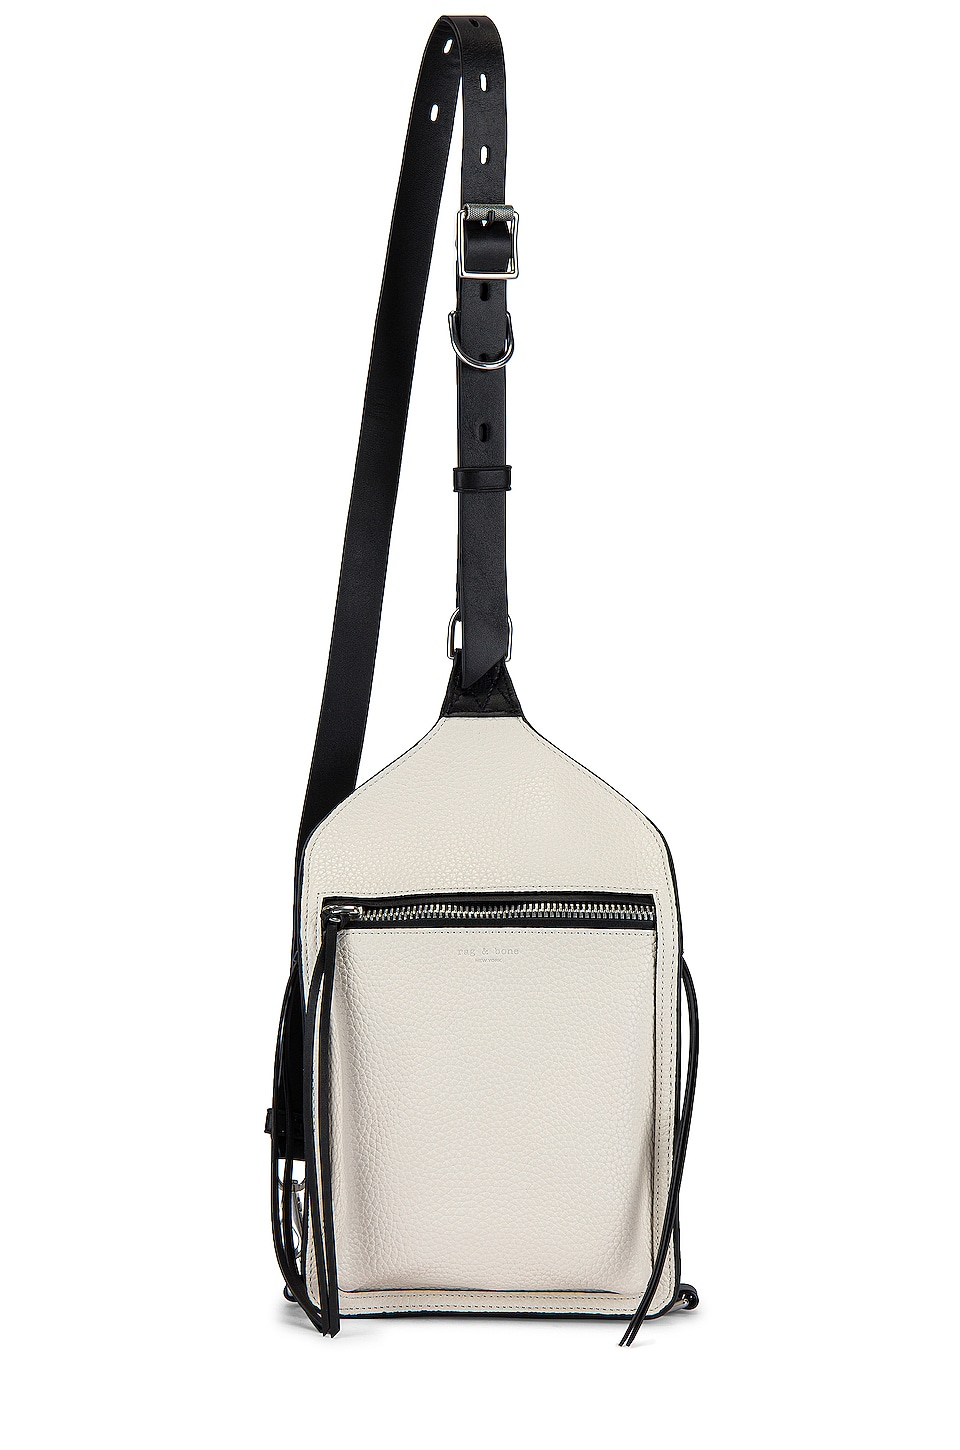 Rag & Bone Elliot Sling Pack in Antique White